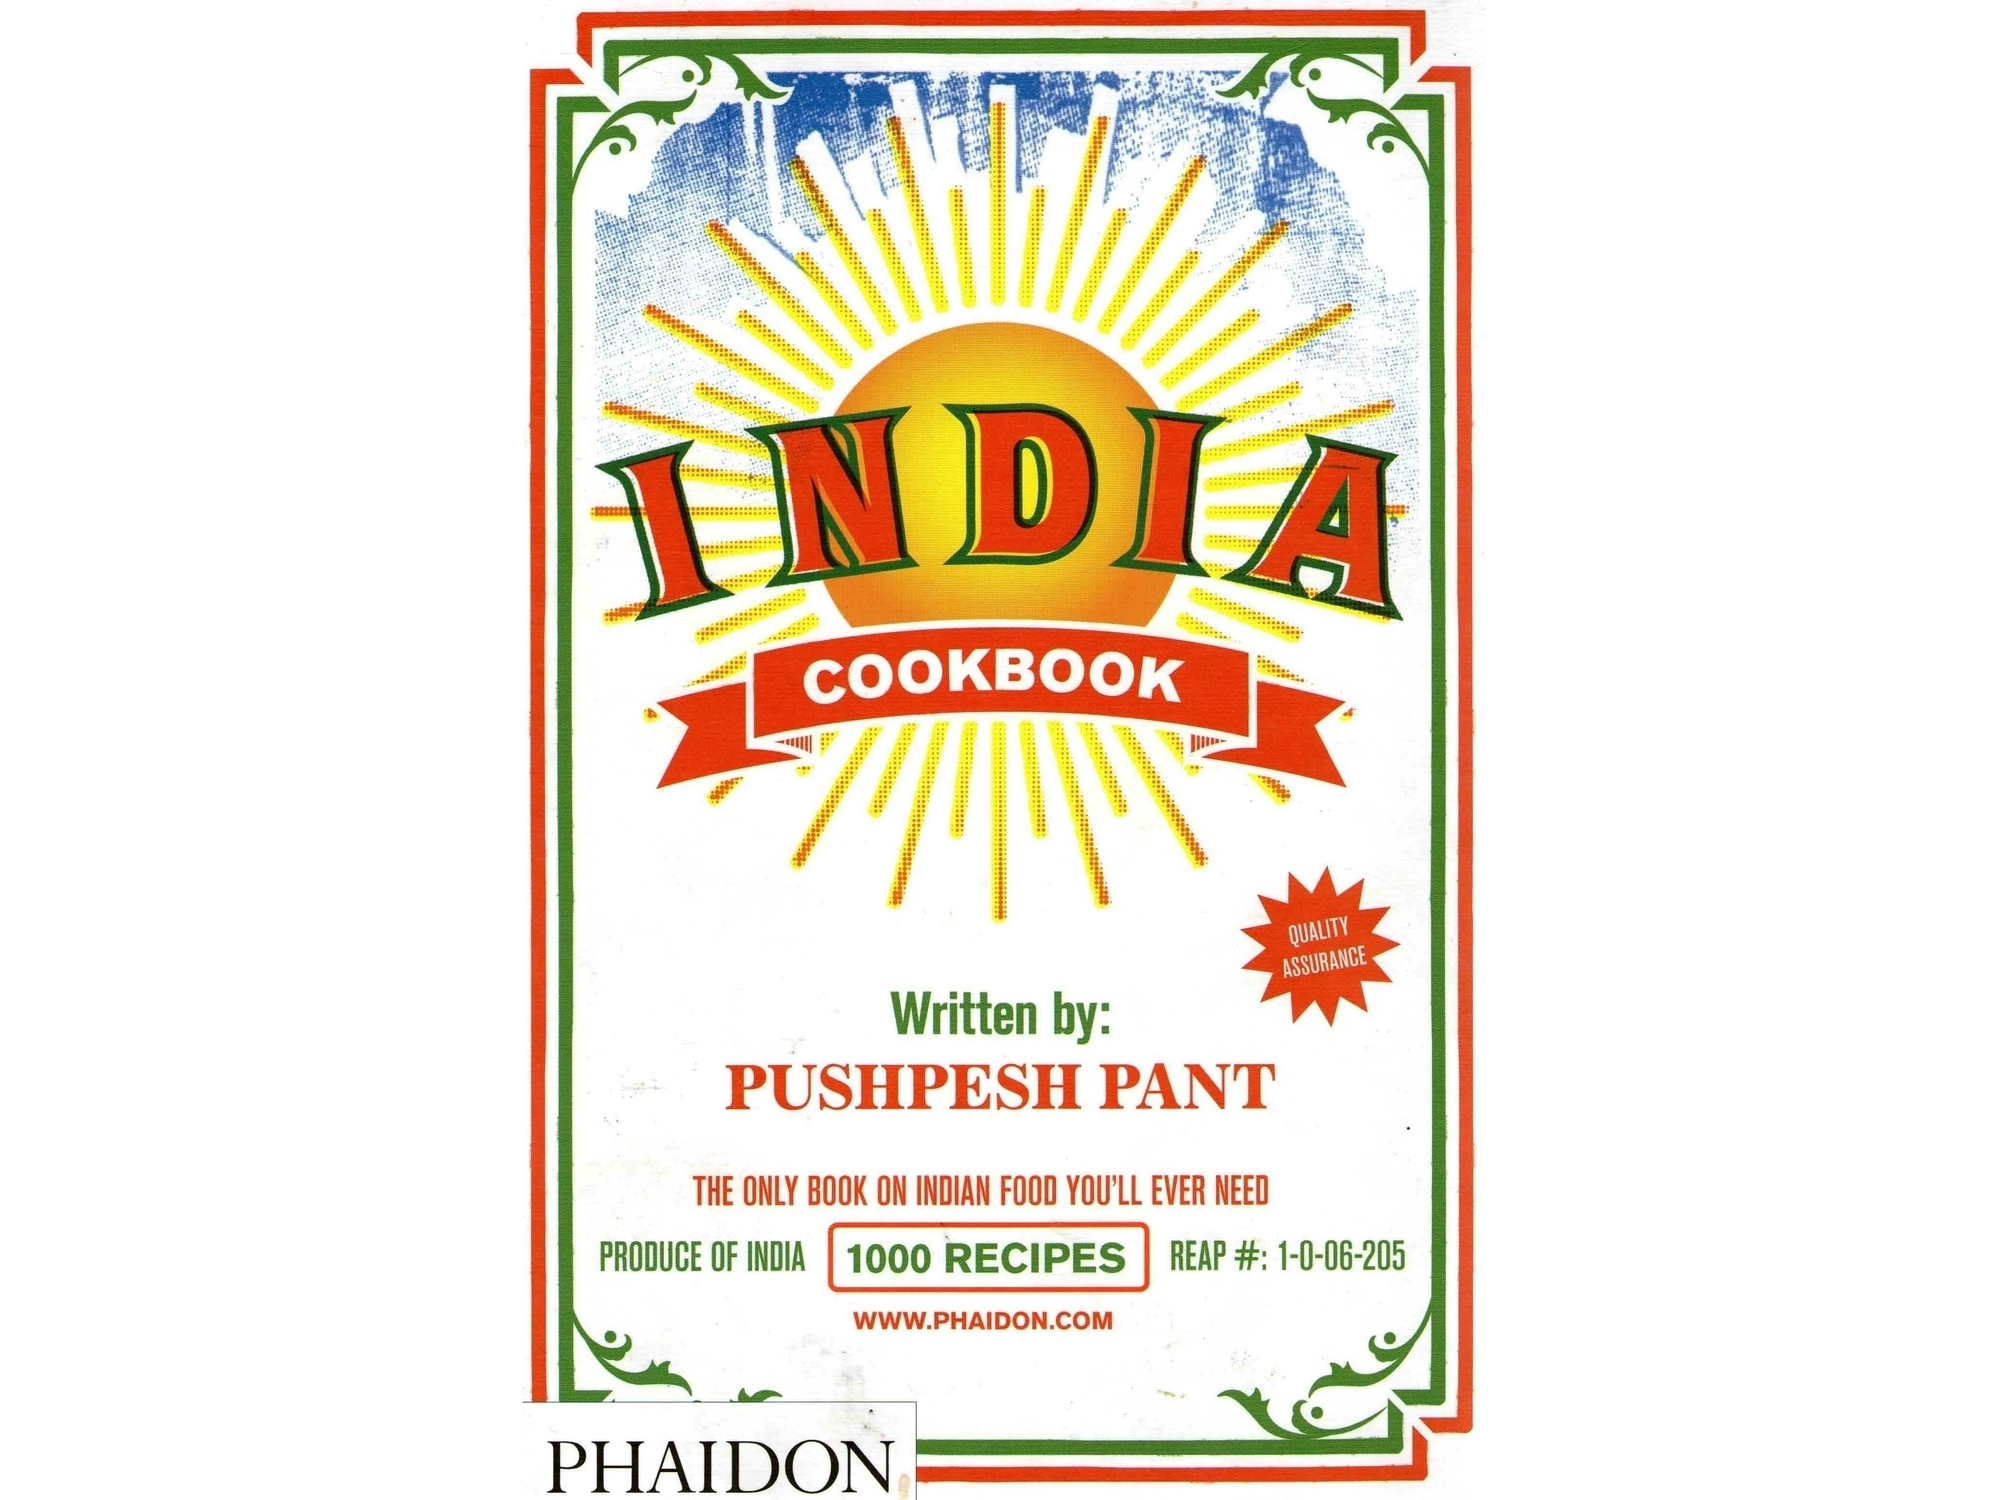 The cover of Pushpesh Pant's India